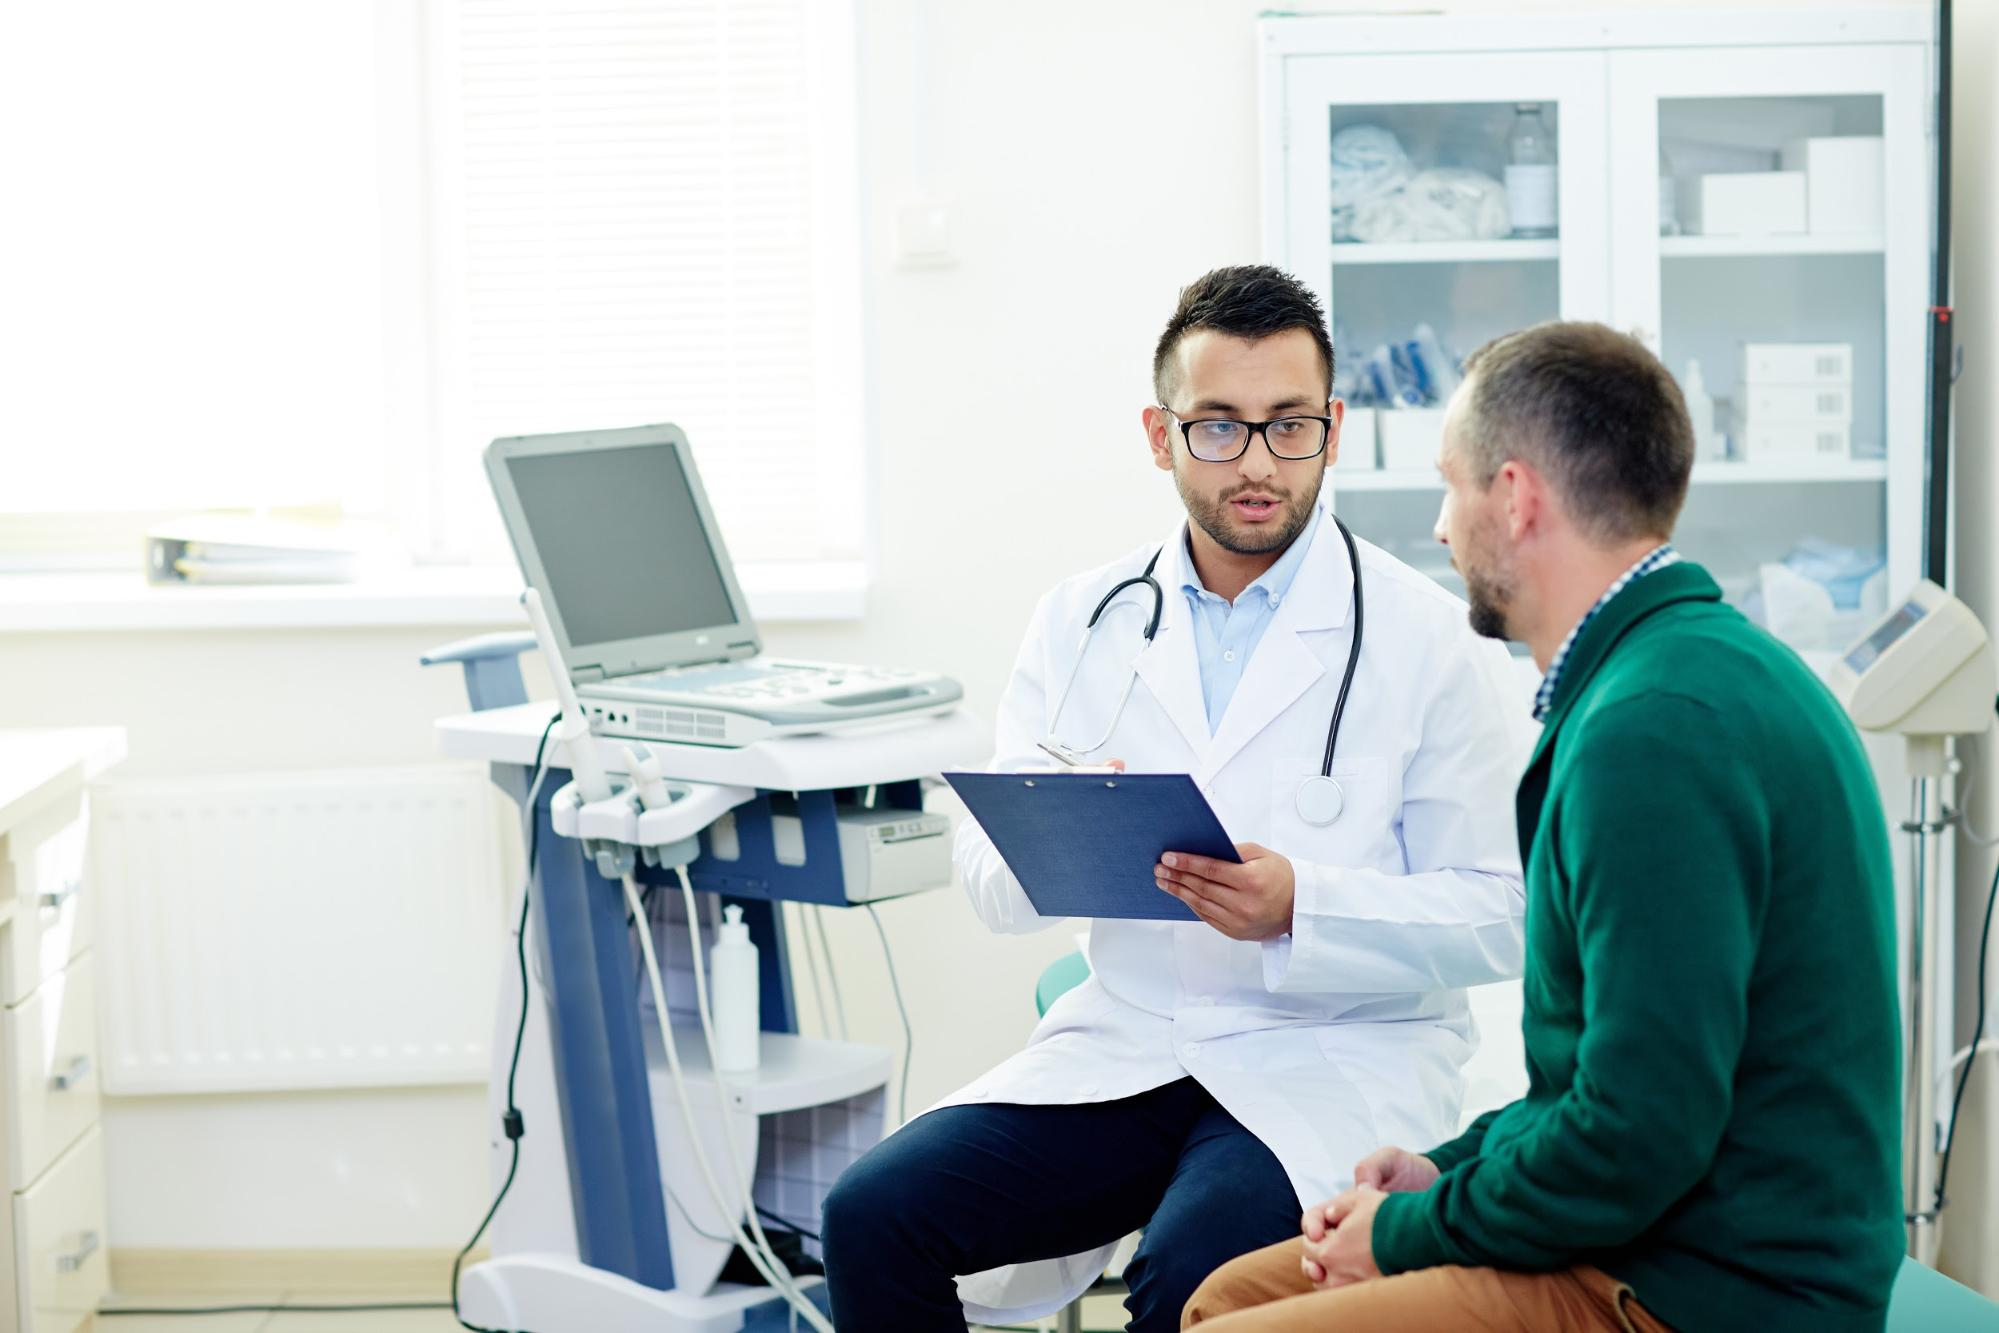 Male patient consulting with his doctor